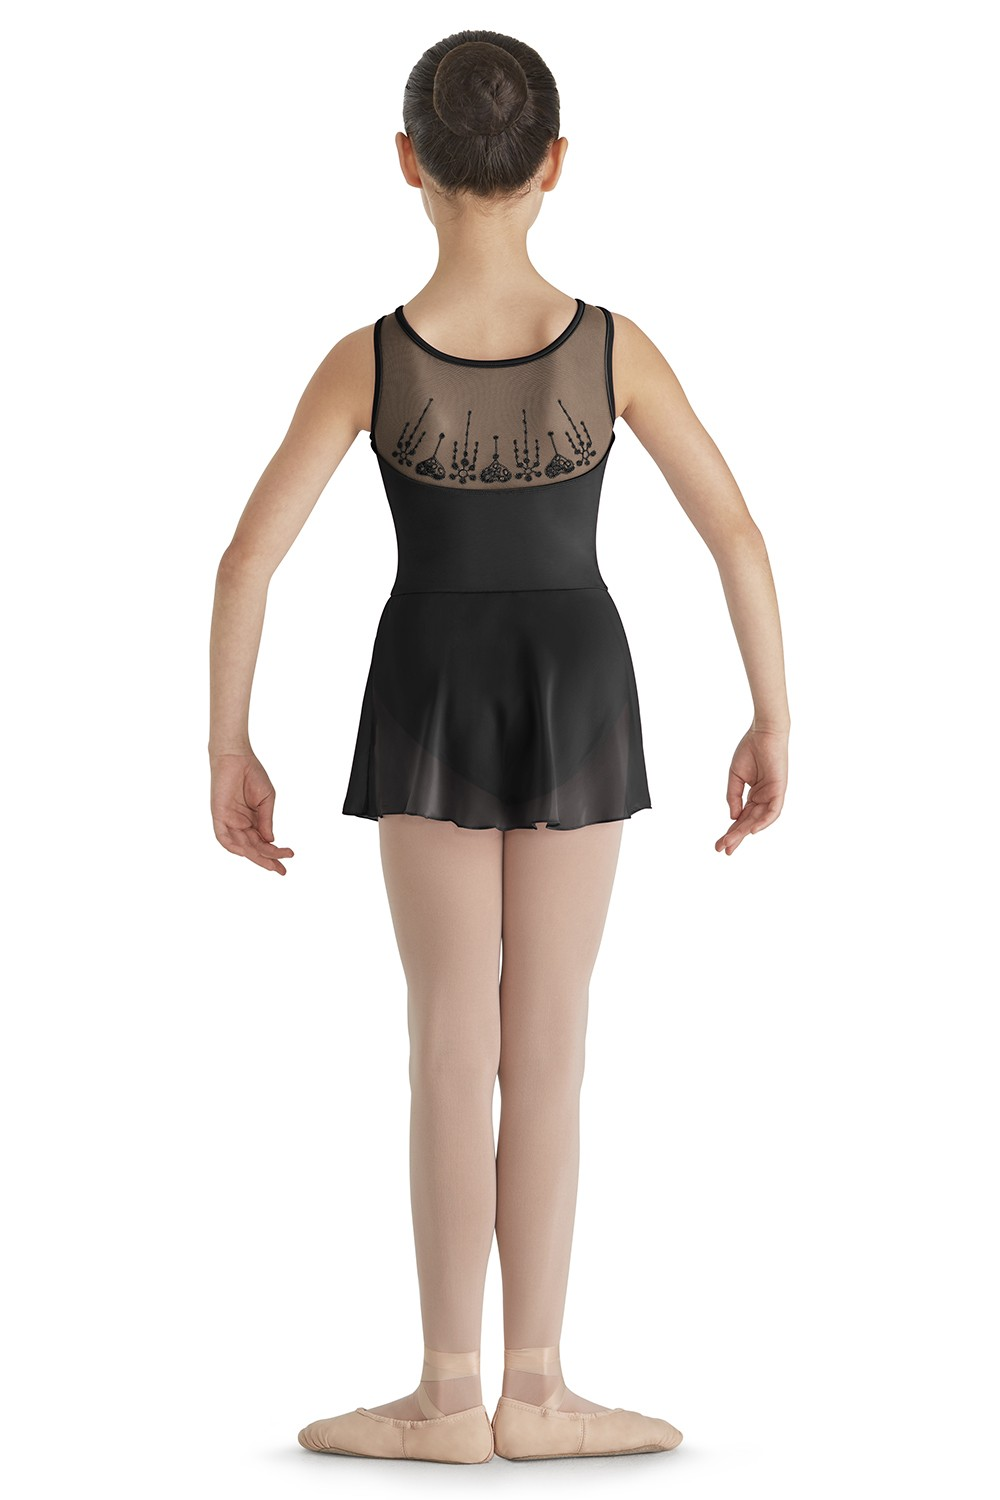 Roksana Children's Dance Leotards